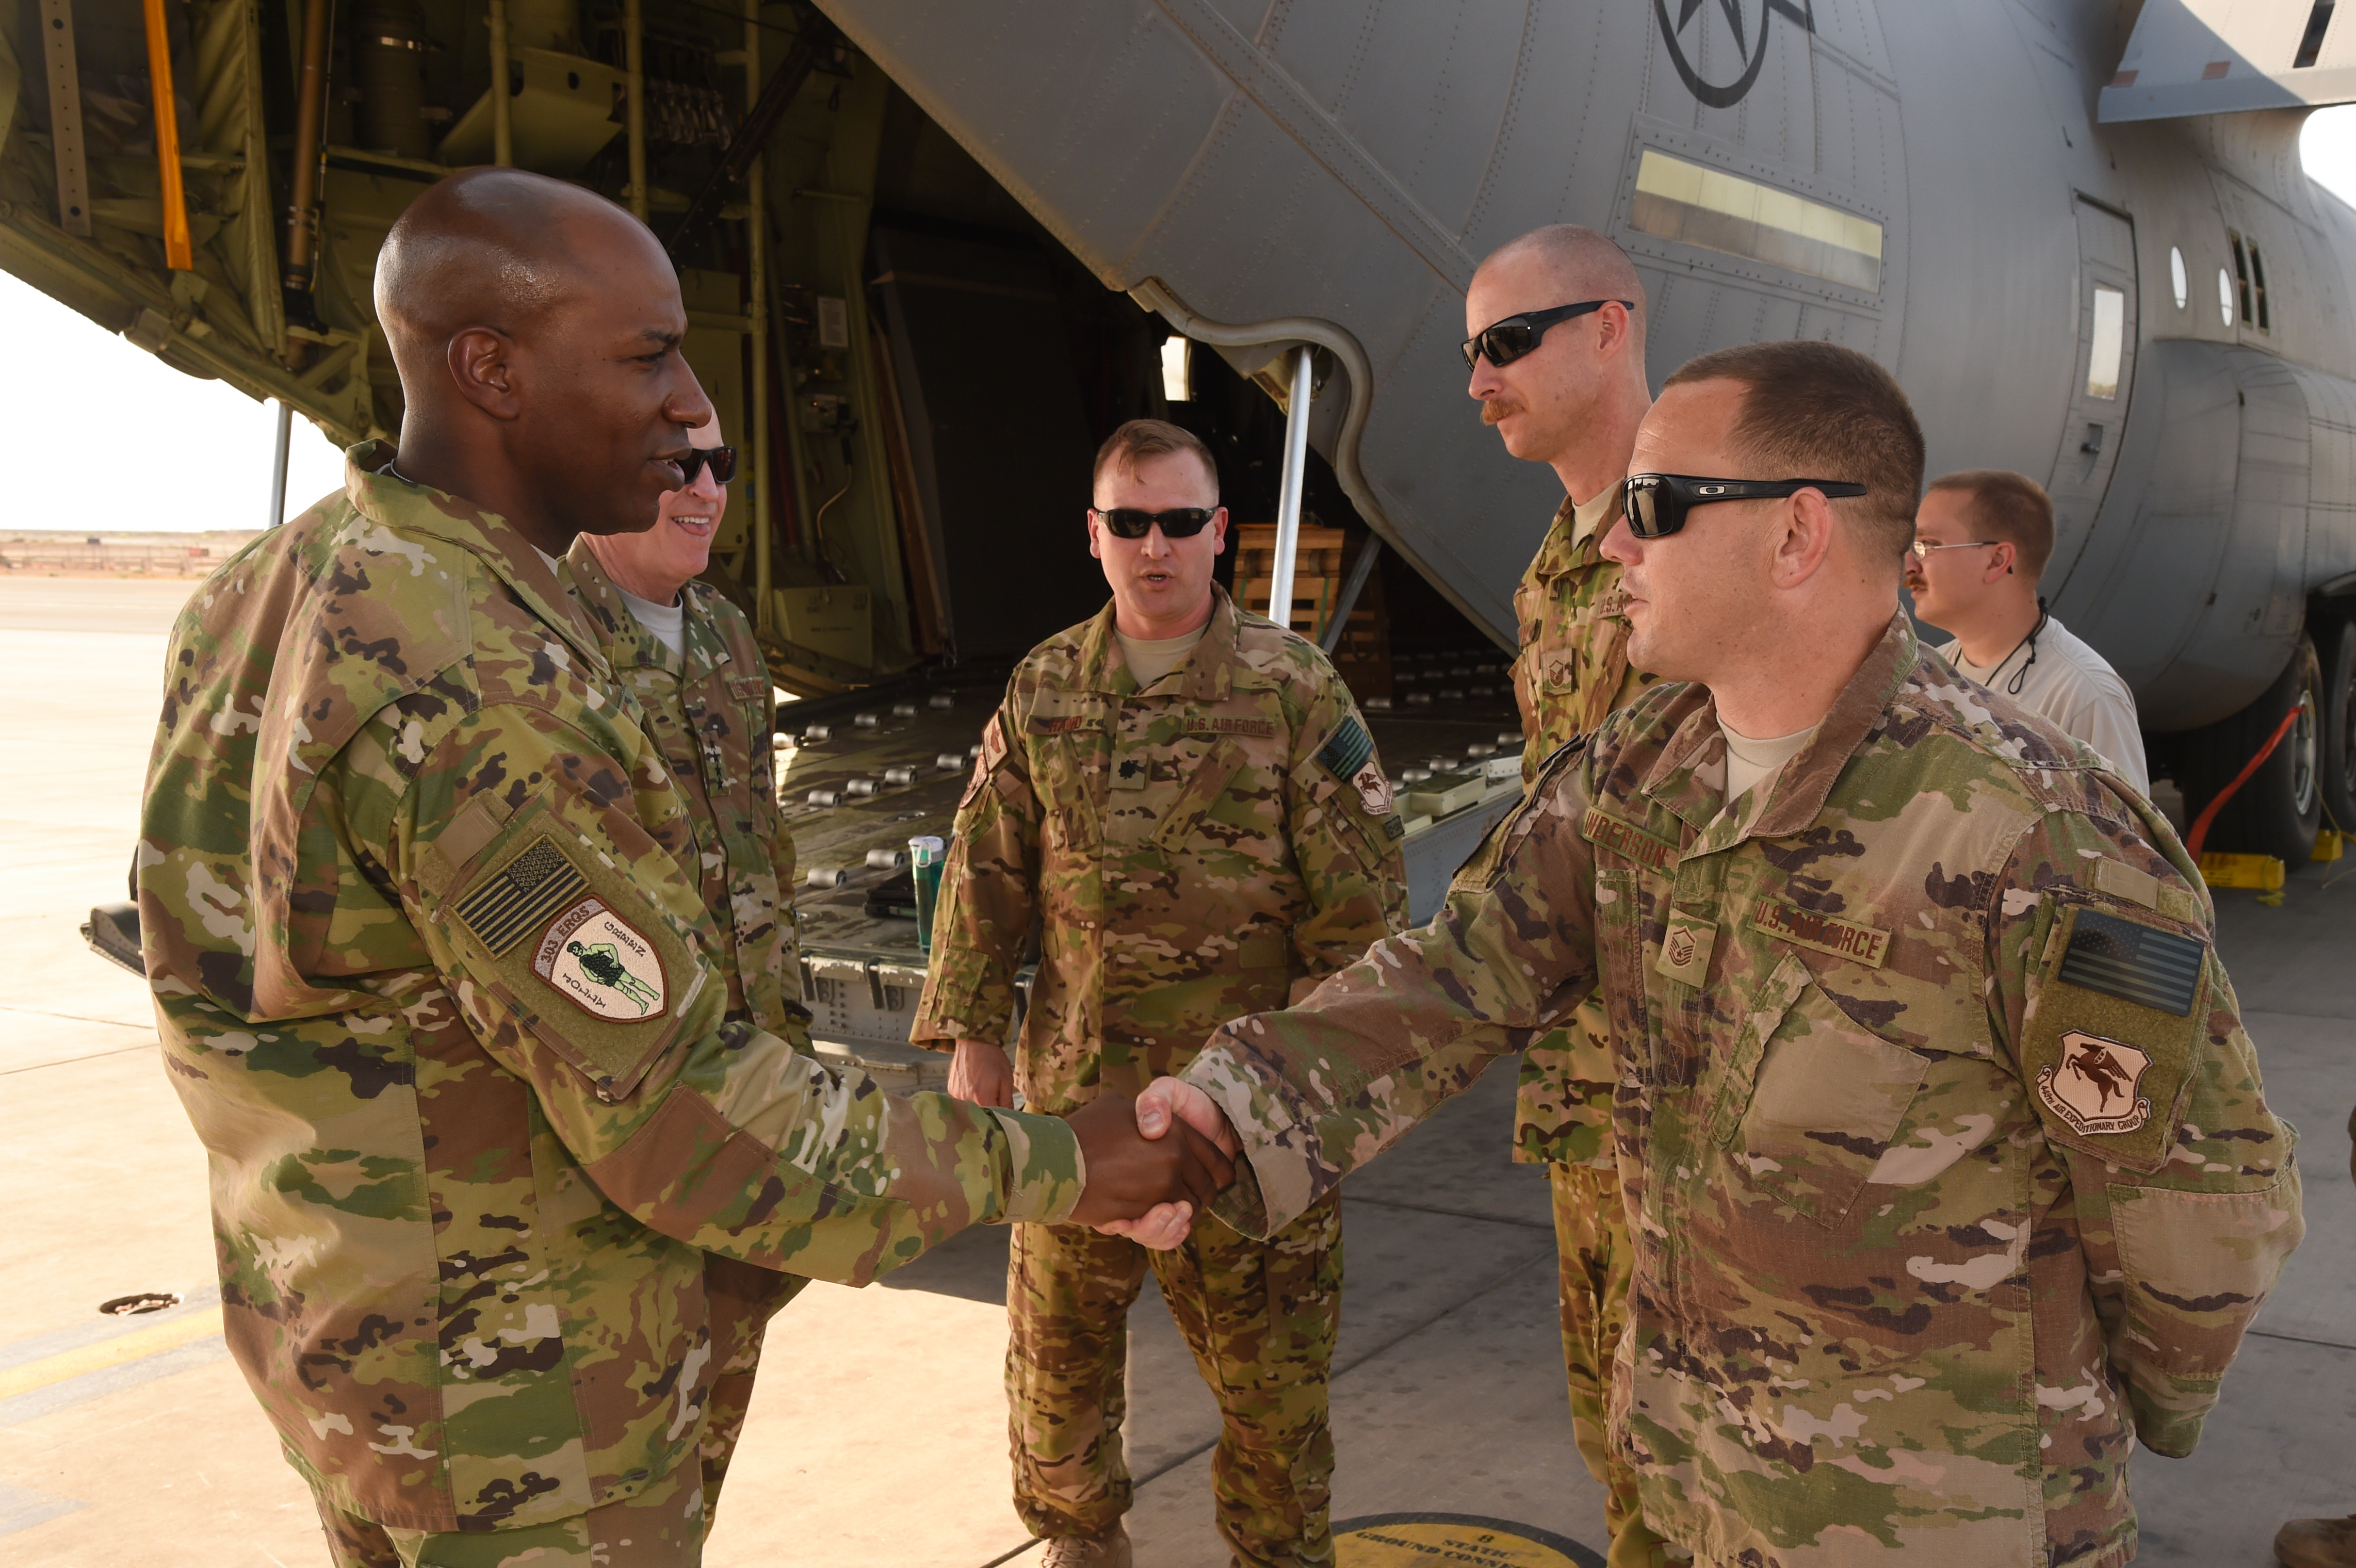 U.S. Air Force Chief Master Sgt. of the Air Force Kaleth Wright greets Master Sgt. Luke Anderson and other airmen from the 75th Expeditionary Airlift Squadron during a visit to Camp Lemonnier, Djibouti, April 11, 2017. Wilson and Wright visited CJTF-HOA and other tenant commands with Wright to gain a better understanding of Air Force integration and missions in the U.S. Africa Command area of responsibility. (U.S. Air National Guard photo by Staff Sgt. Penny Snoozy)